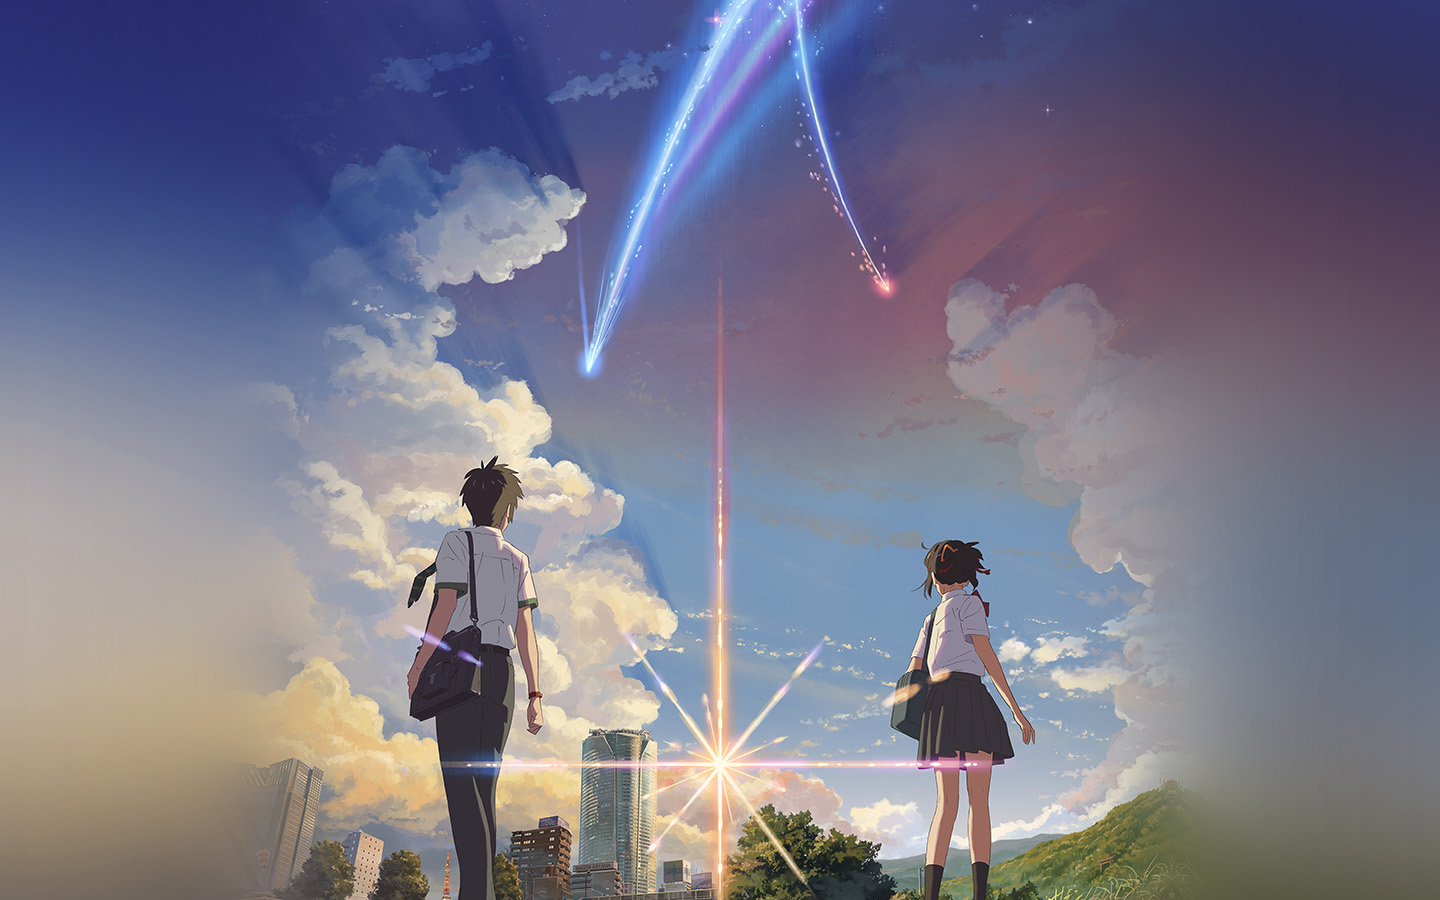 Aw27 Anime Film Yourname Sky Illustration Art Wallpaper